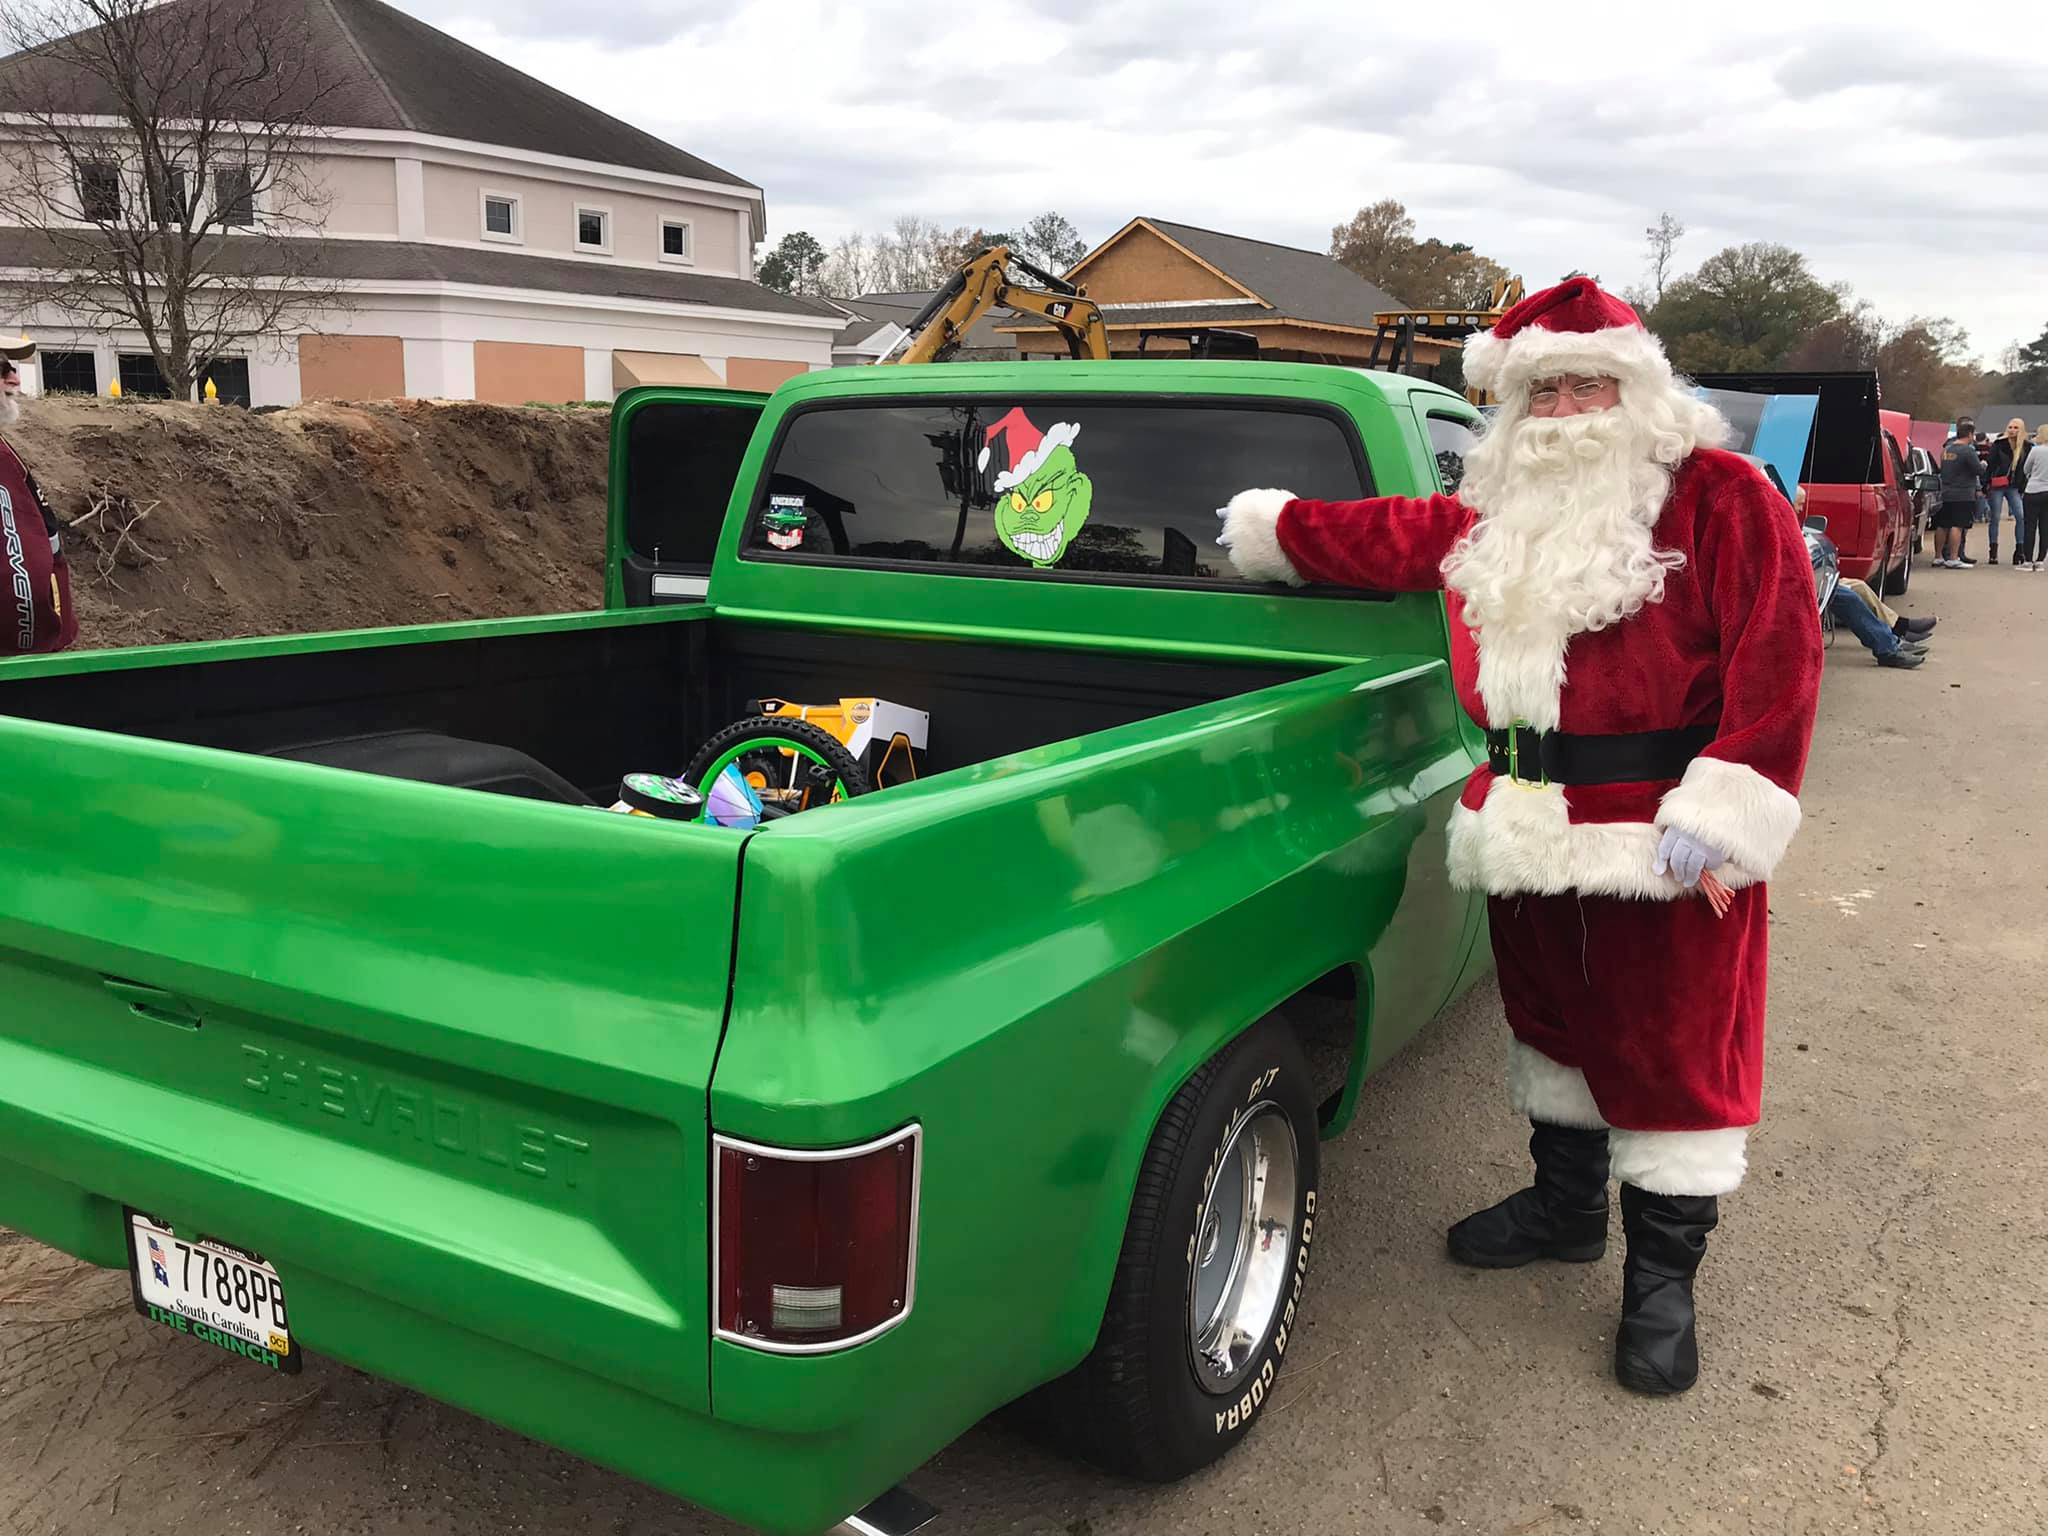 2020 Toy Drive (12/12/20)